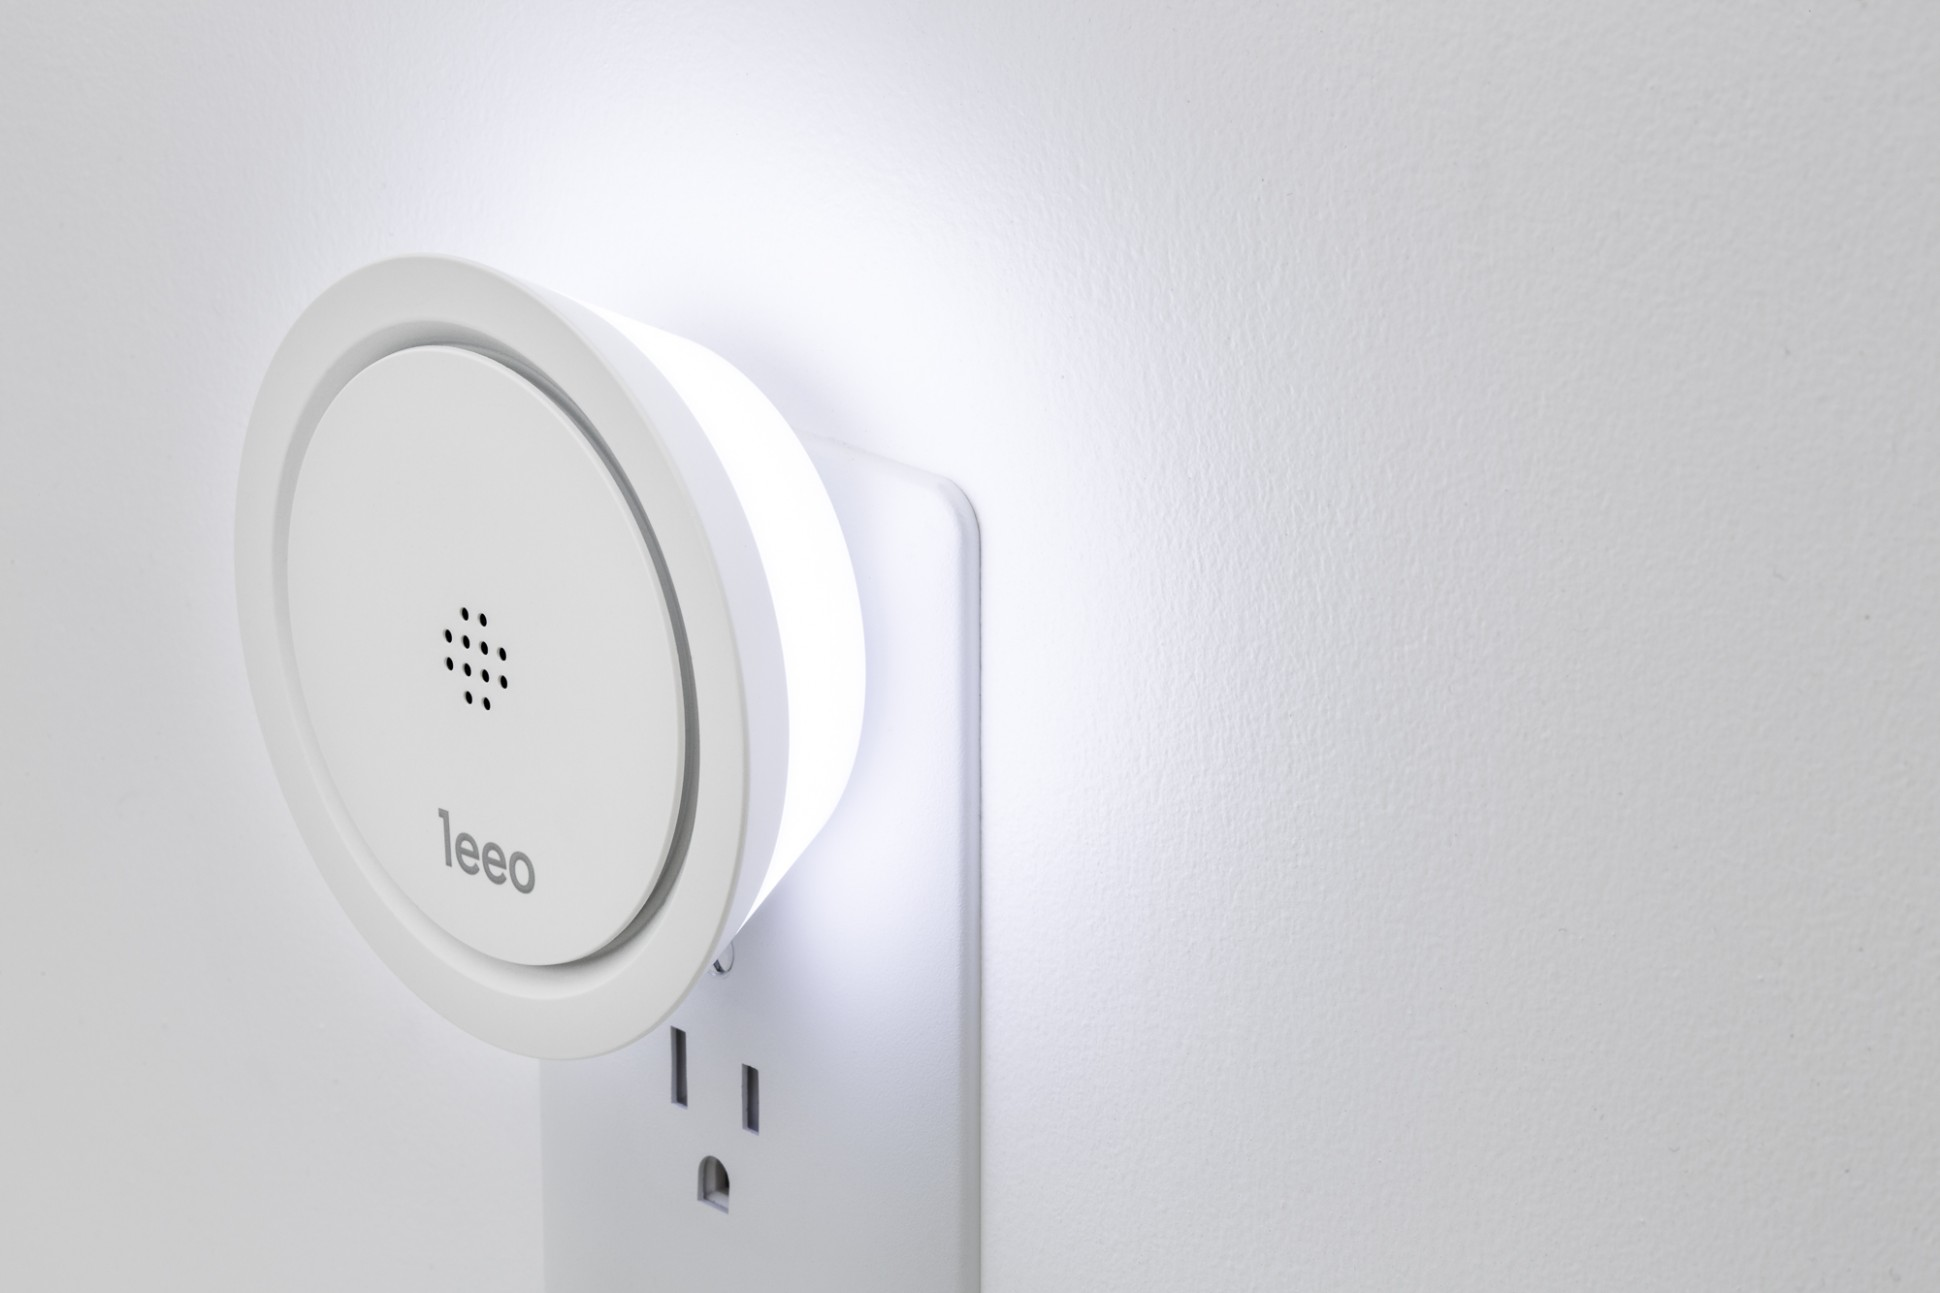 Leeo Smart Nightlight